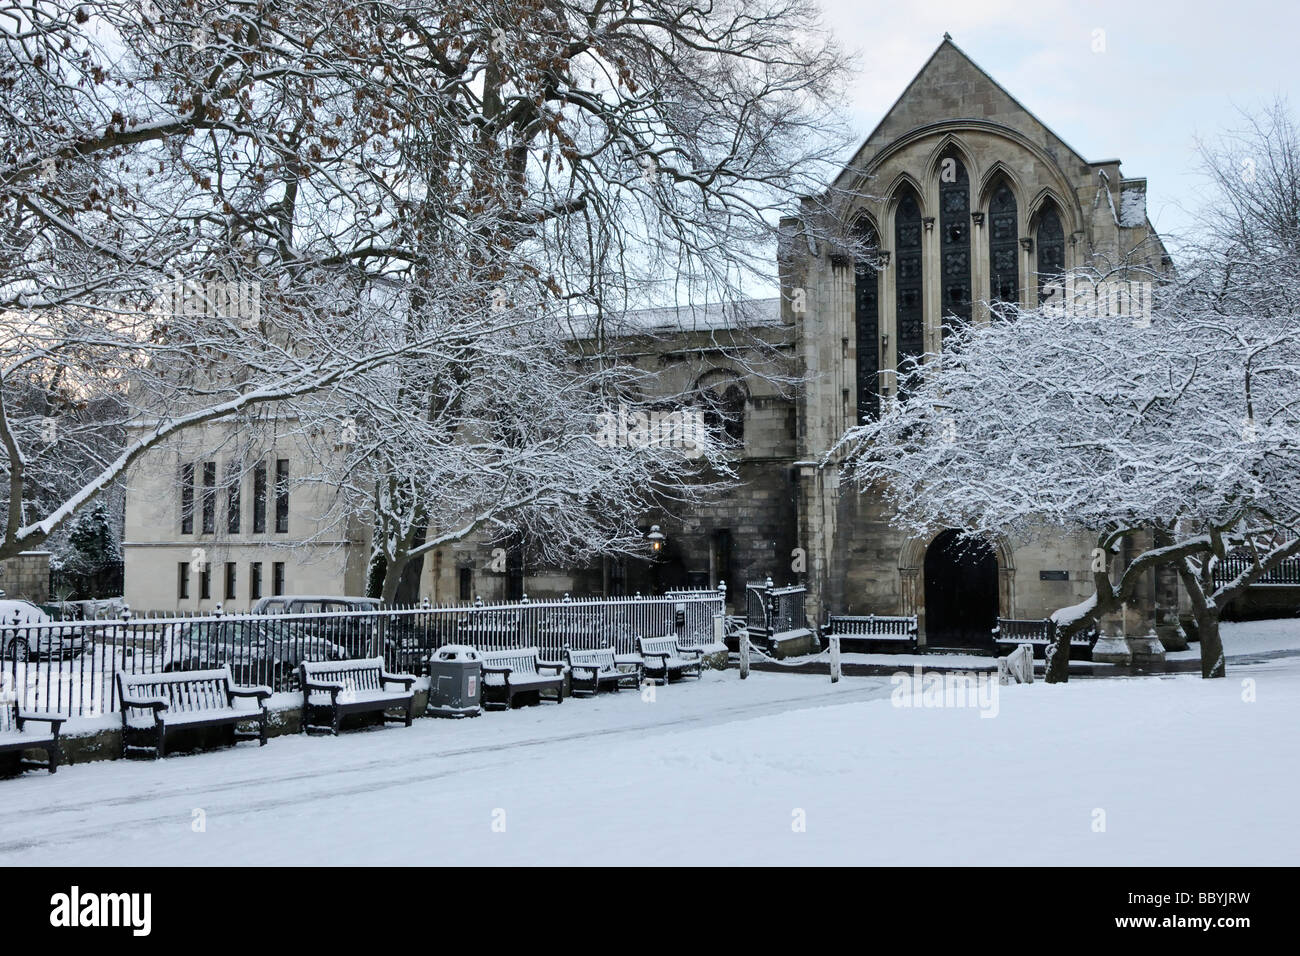 The Minster Library in snow, Deanery Gardens, York, England, UK. Stock Photo